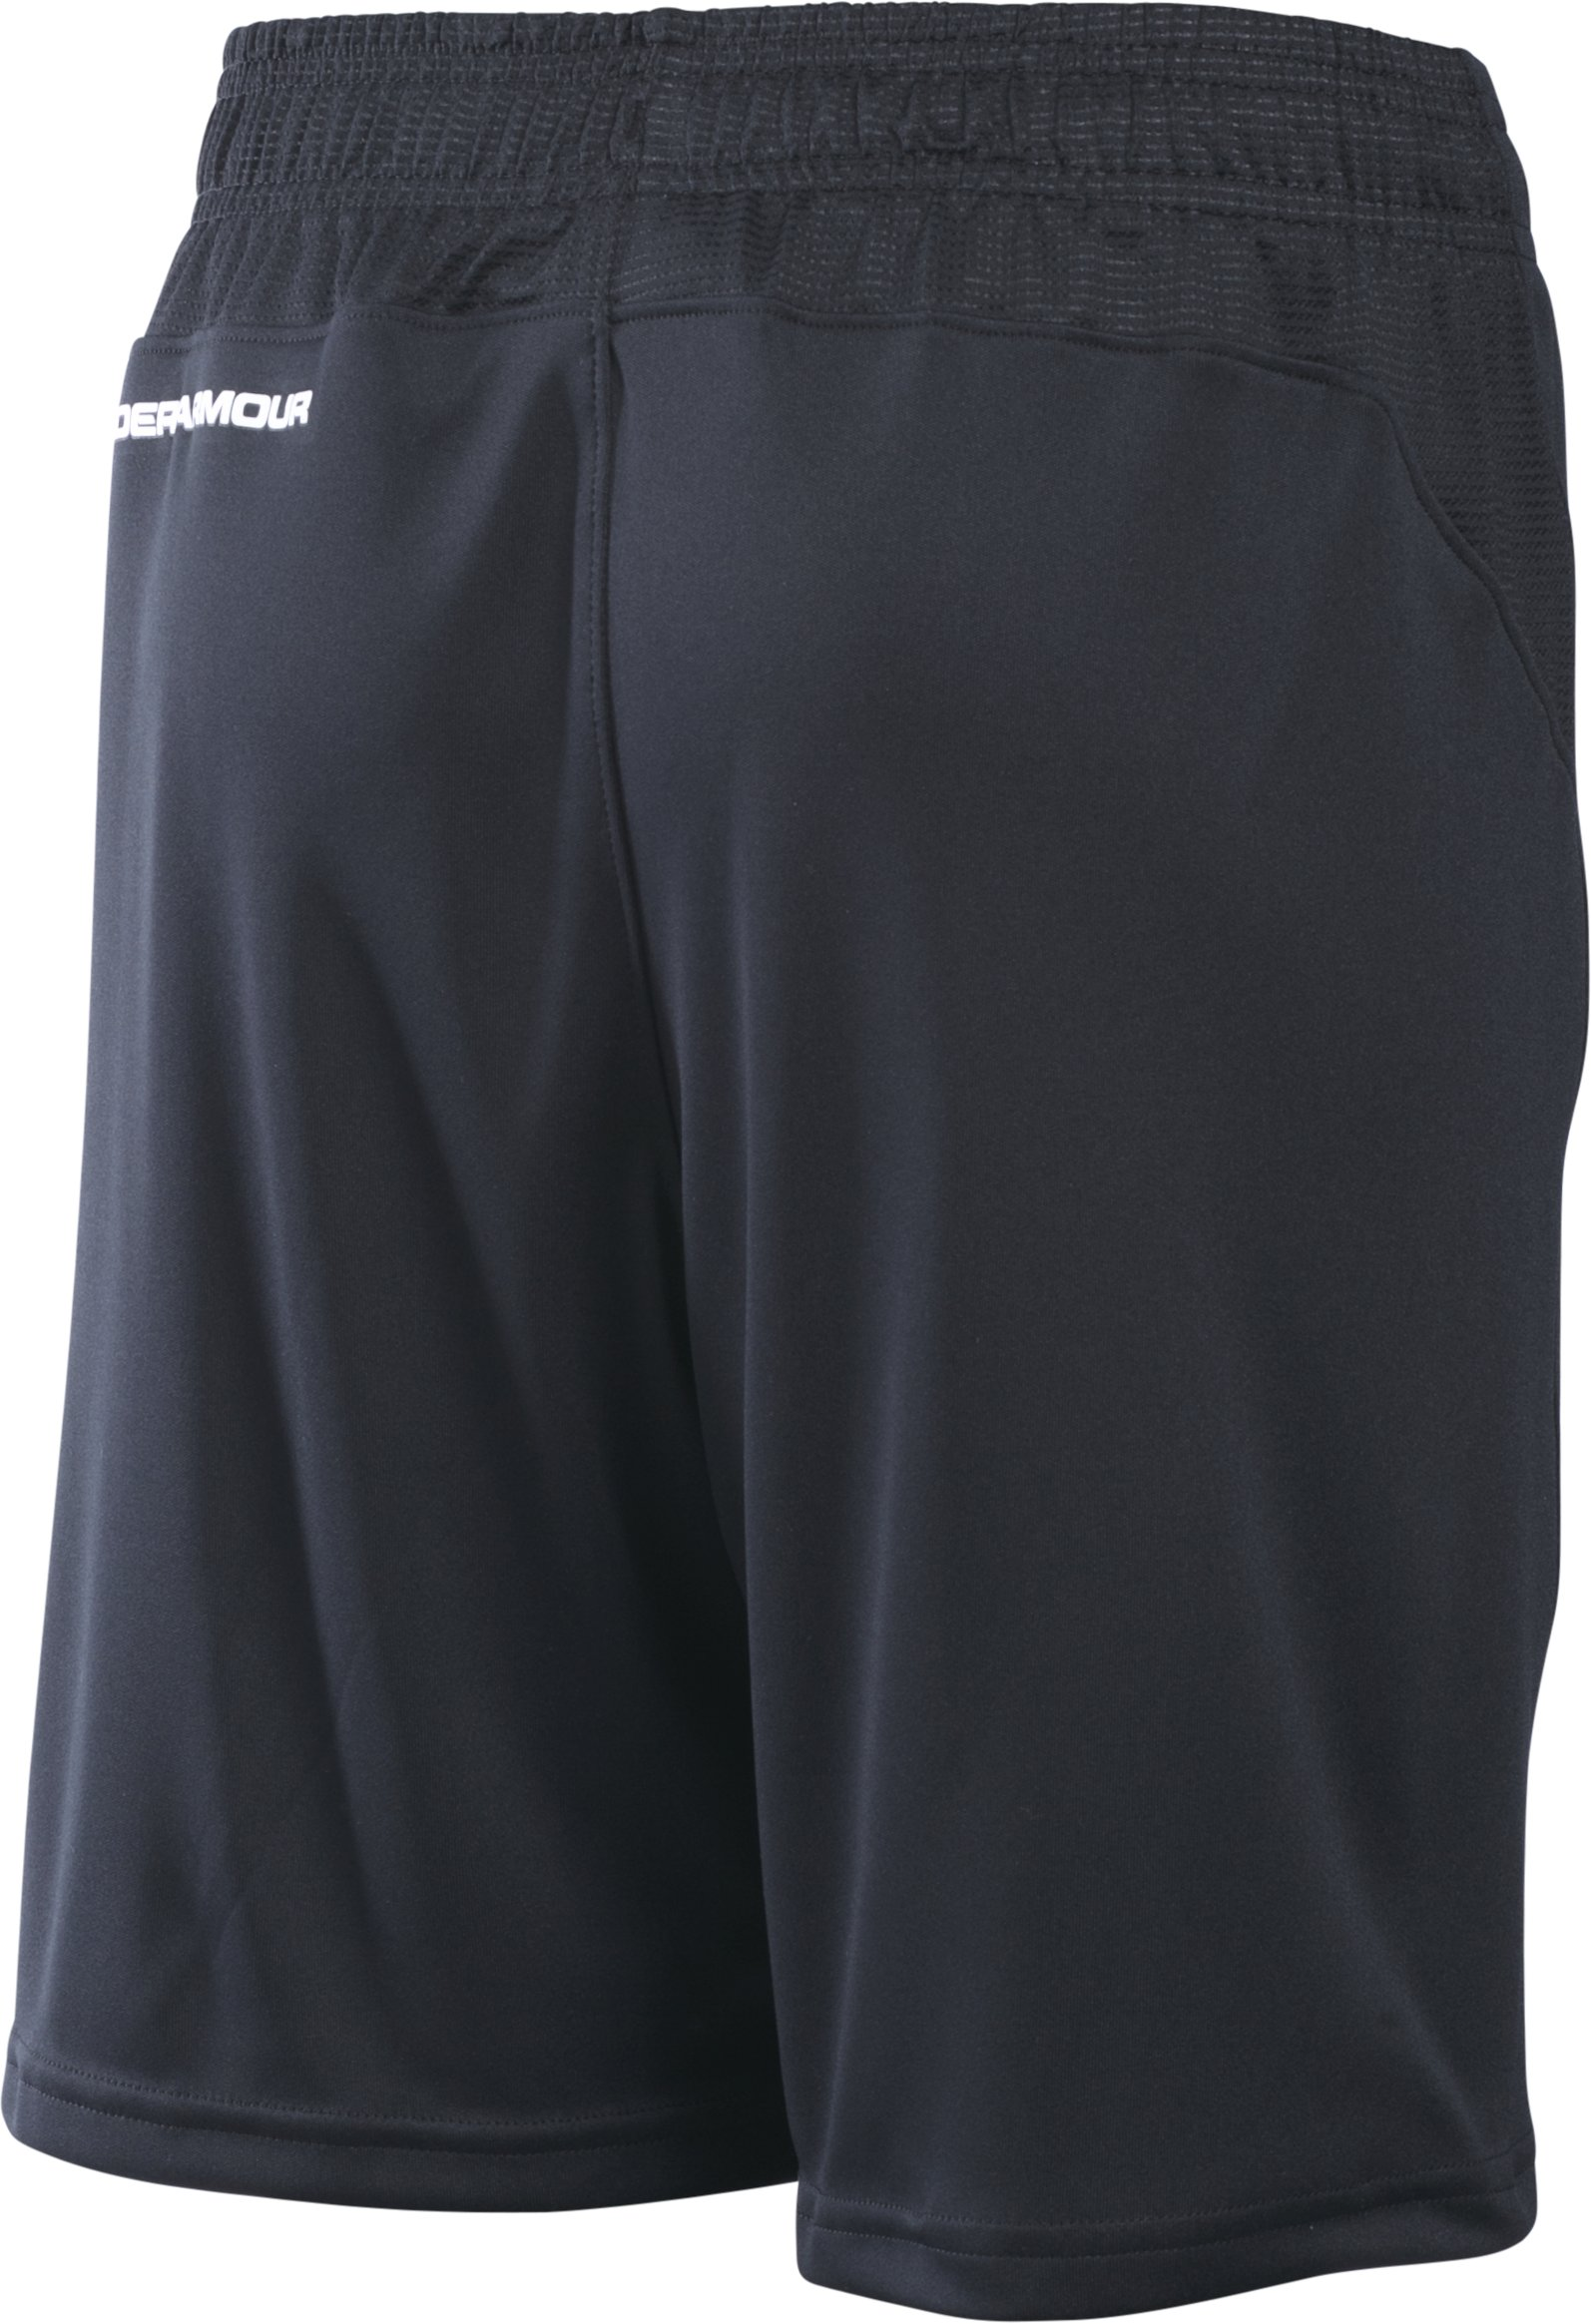 Boys' UA Challenger Knit Shorts, Black , zoomed image